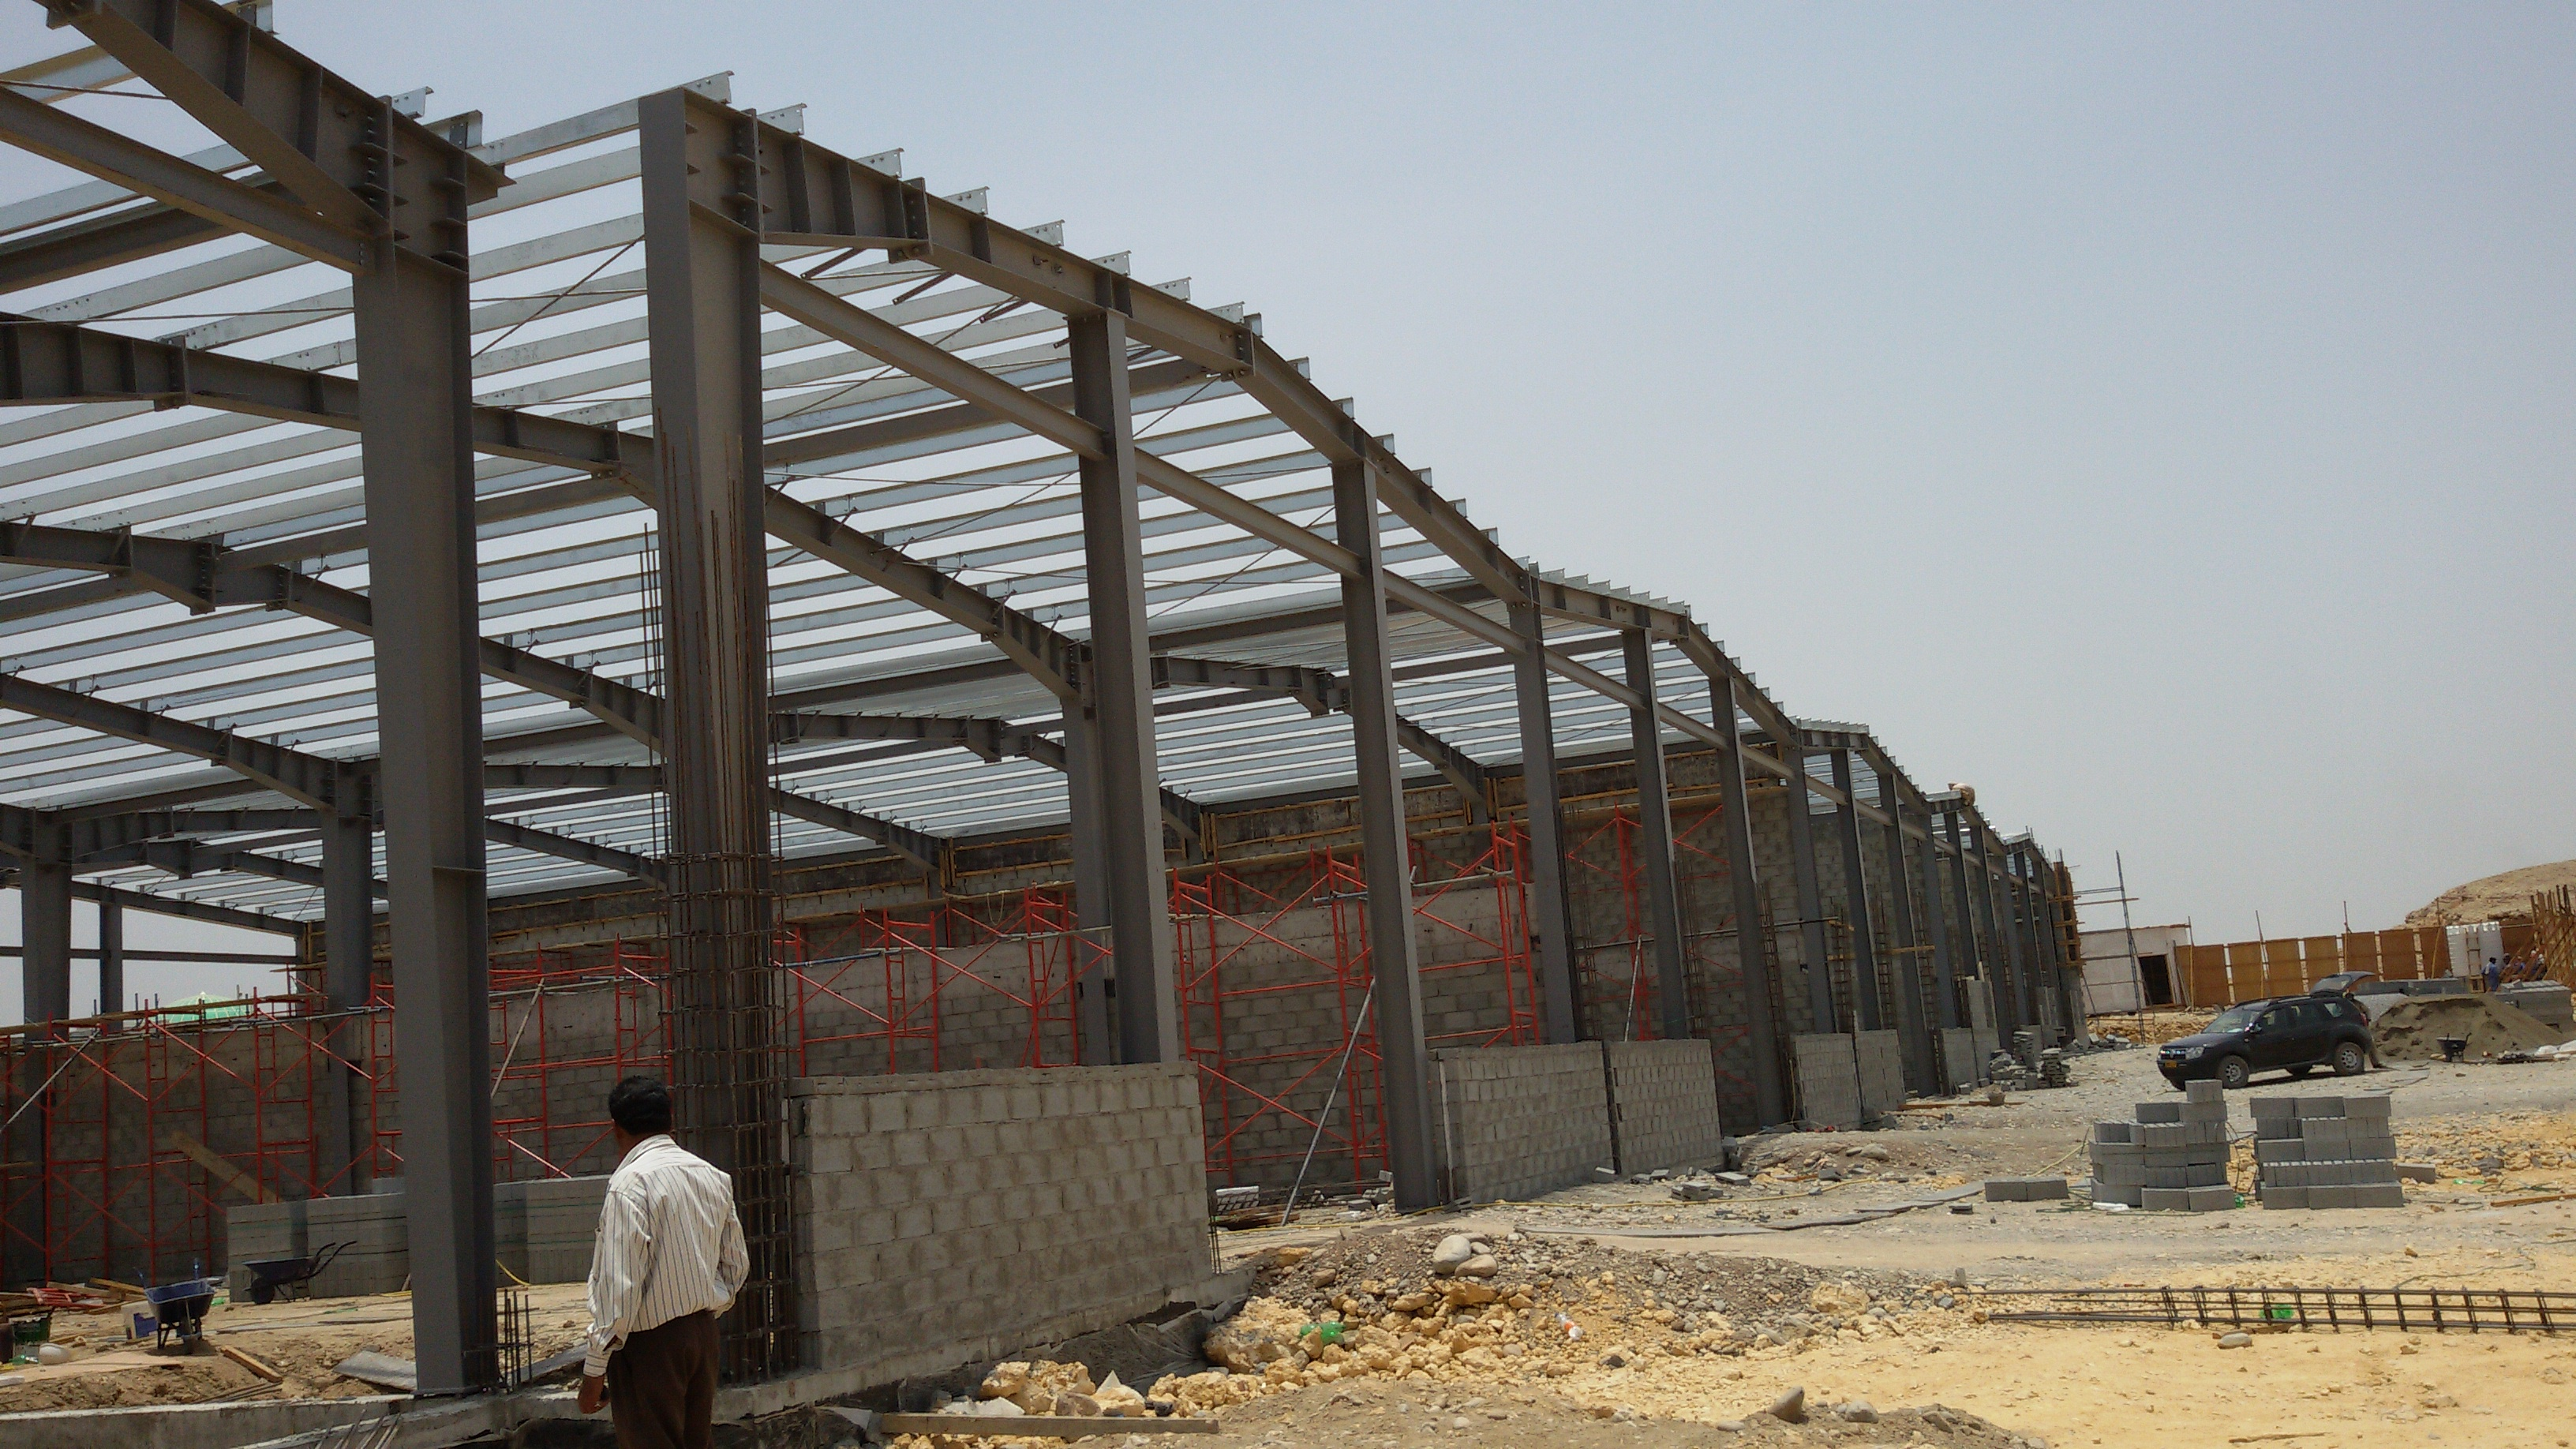 Al khaleli warehouse at Rusayl | Excellent Steel Oman